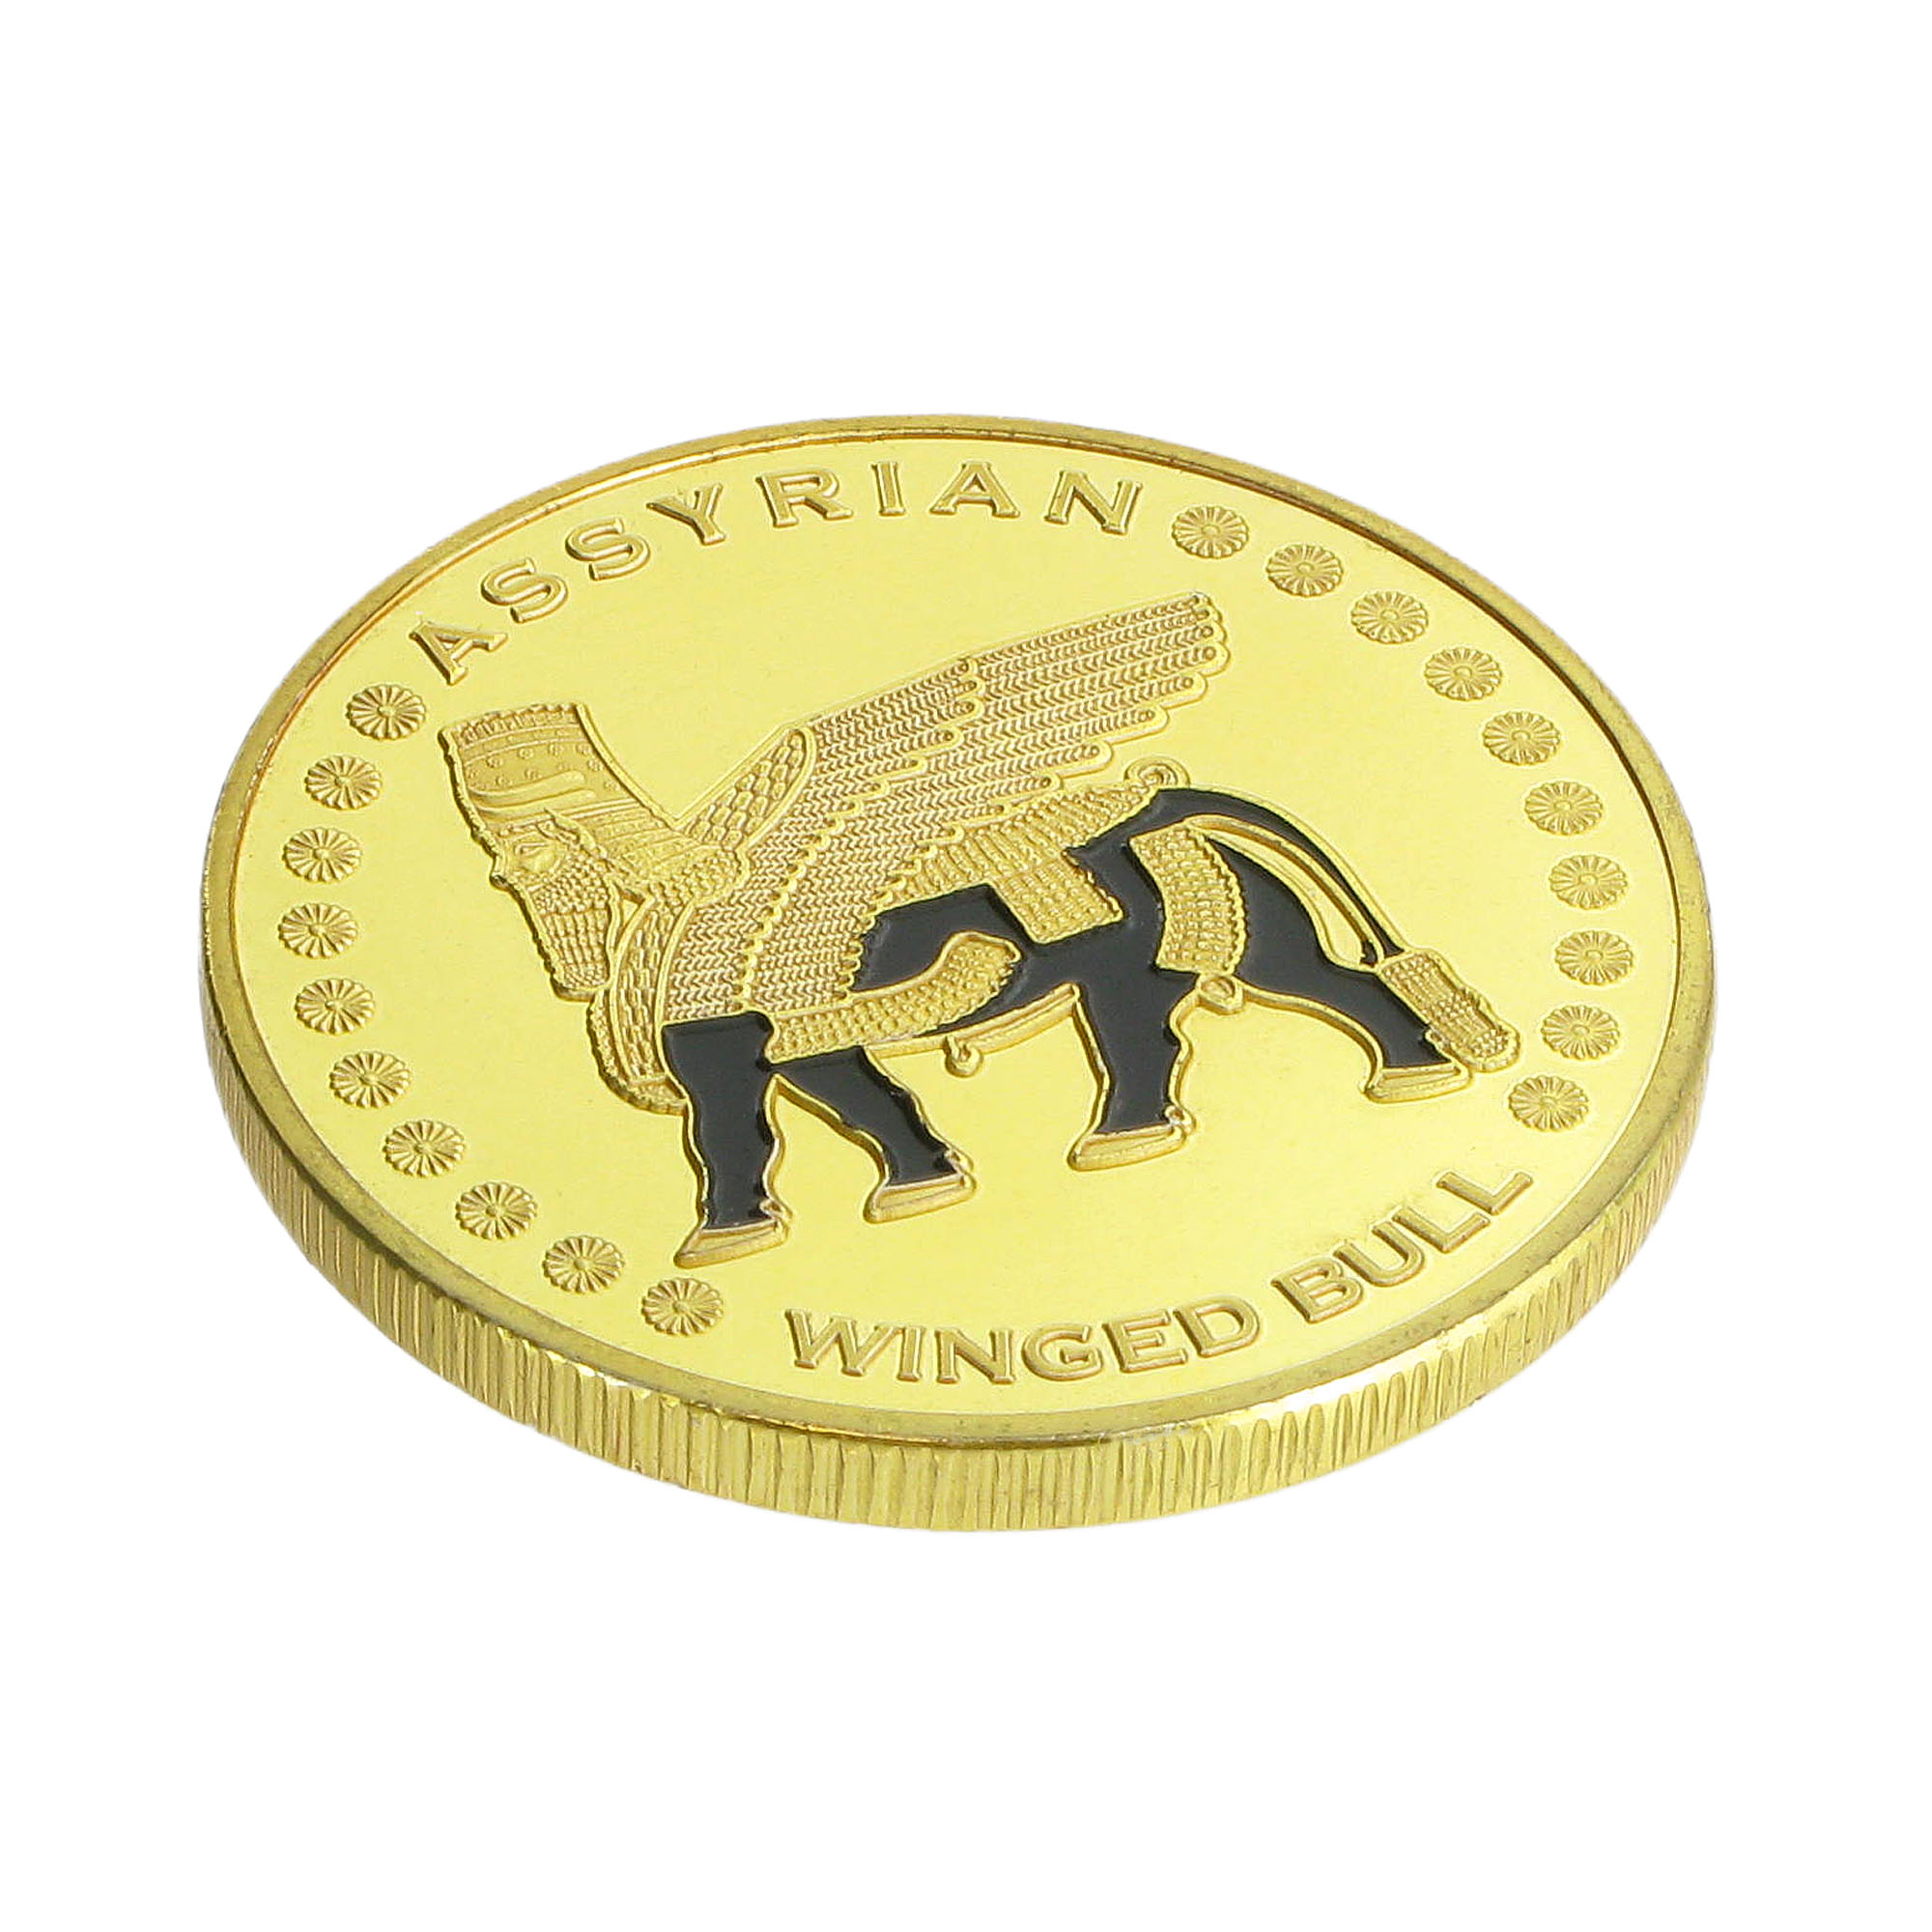 Winged bull souvenir coin